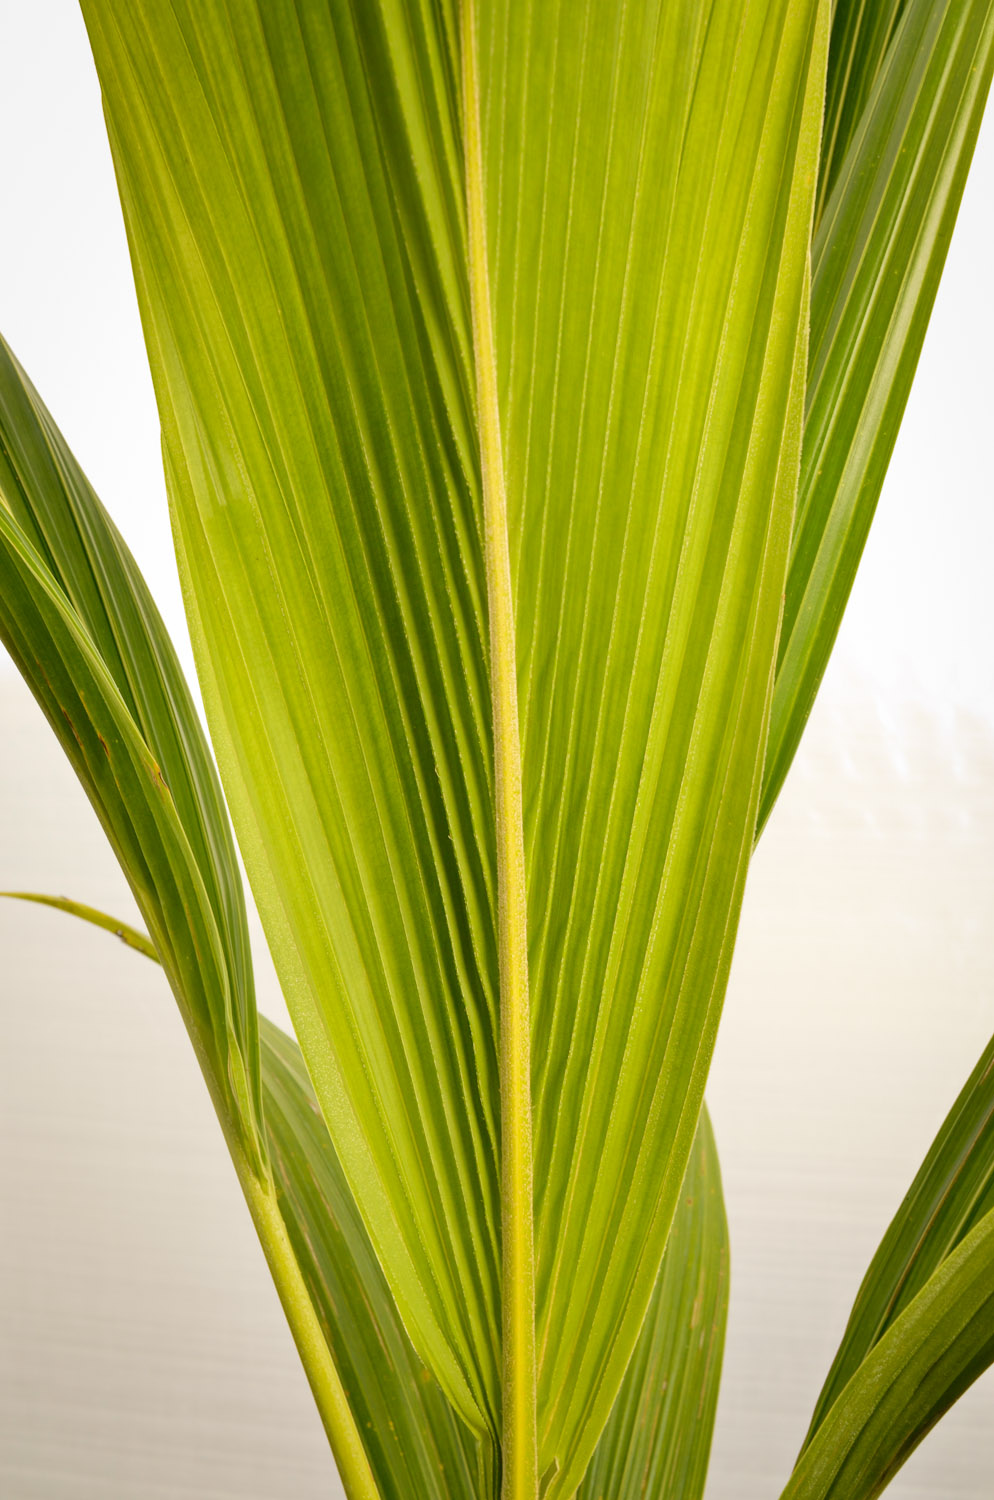 Coconut-palm-detail.jpg